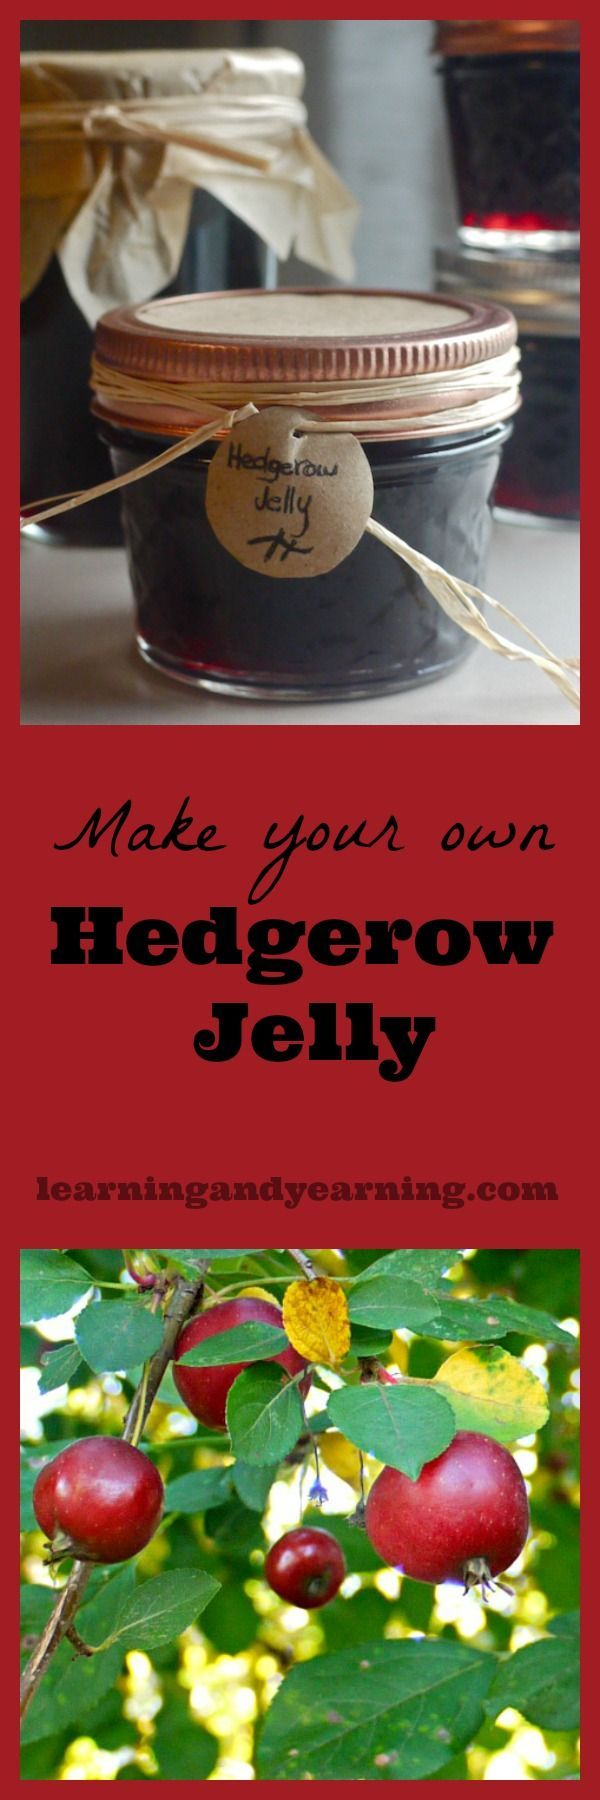 Hedgerow jelly is a great way to use the multitude of wild fruits that tend to grow along the edges of field and forest. And using some crabapple means that you don't need pectin.